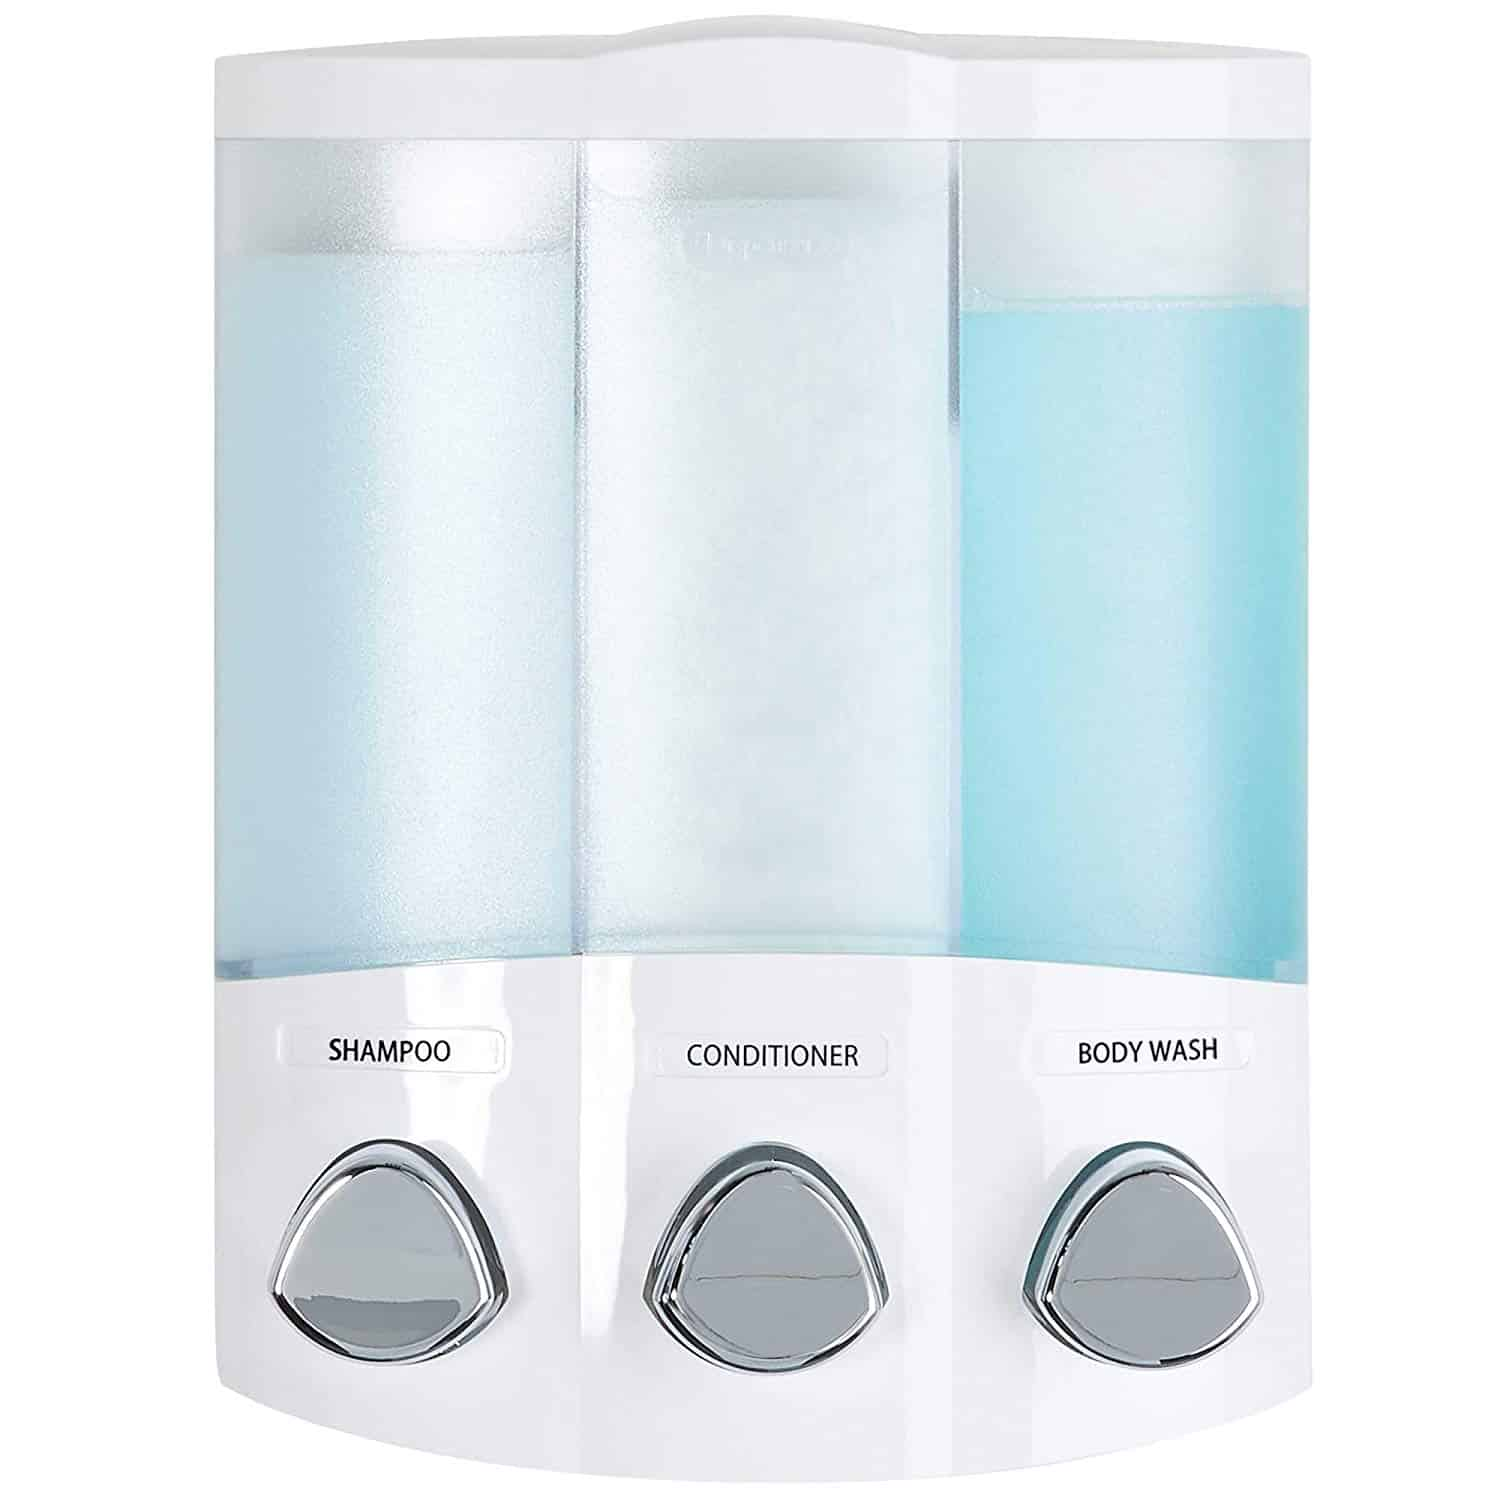 TRIO 3-Chamber Soap and Shower Dispenser